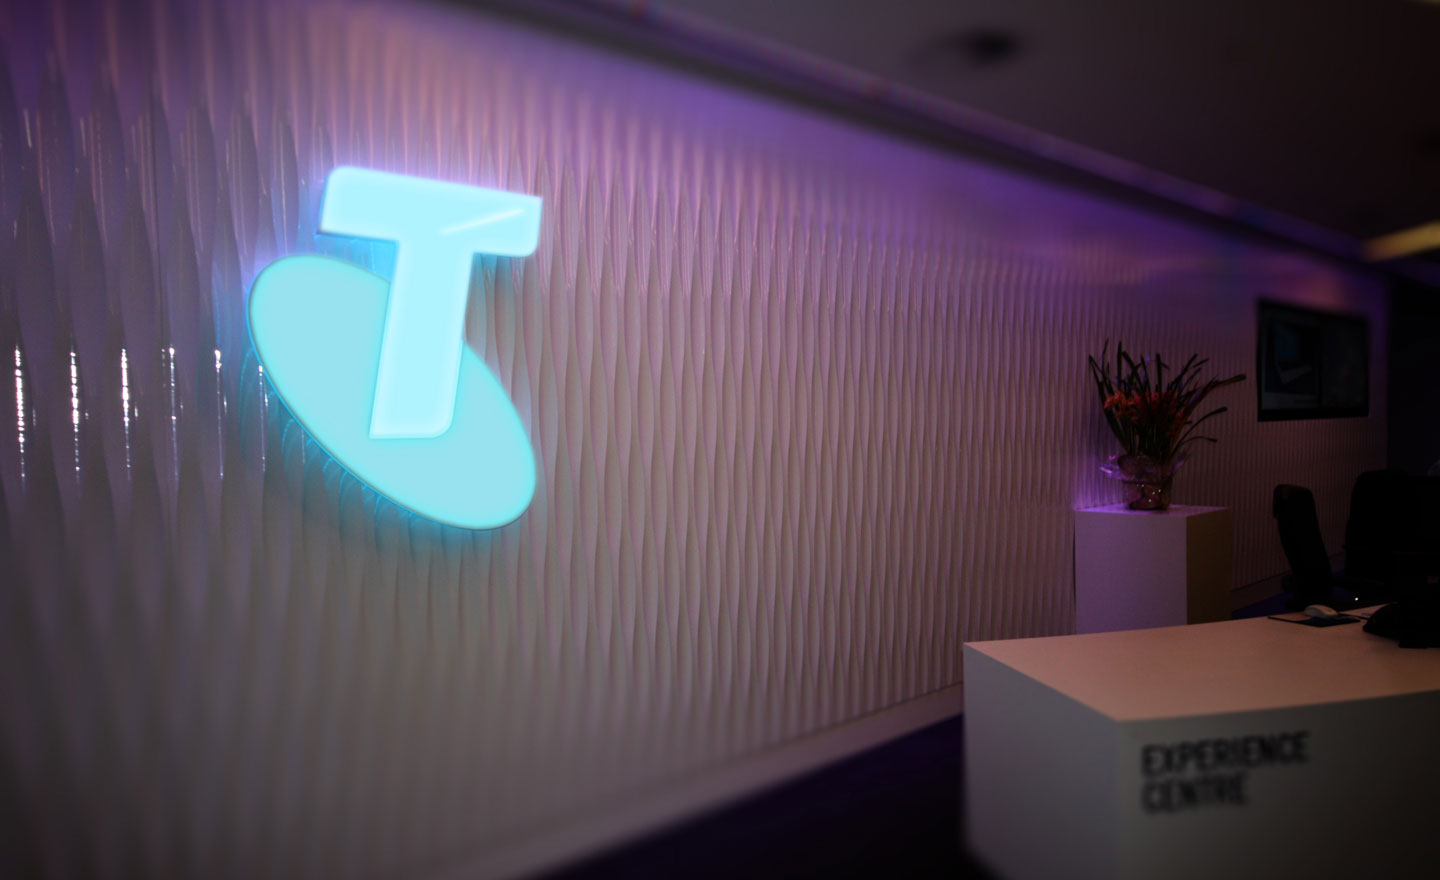 Telstra Reception Area